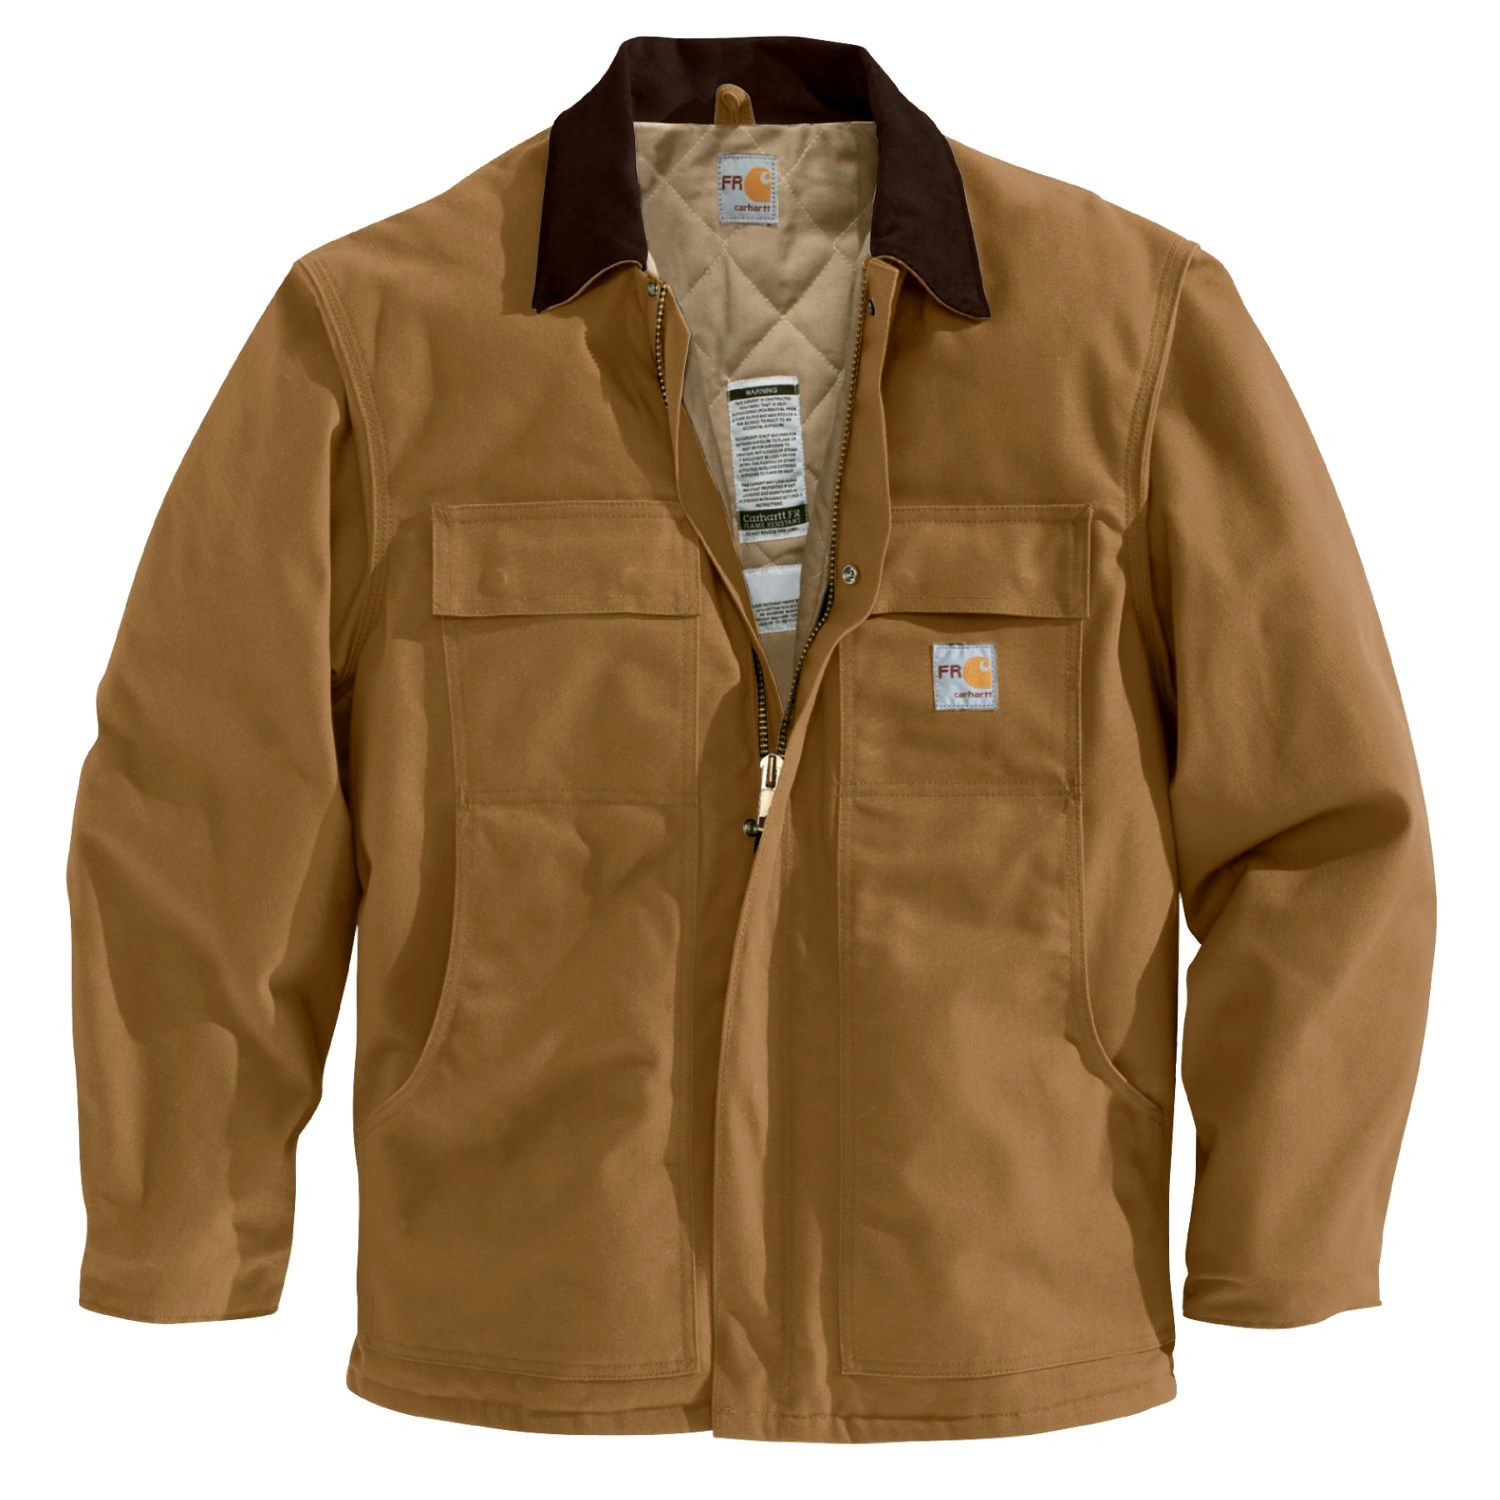 Carhartt Fr Flame Resistant Traditional Duck Work Coat